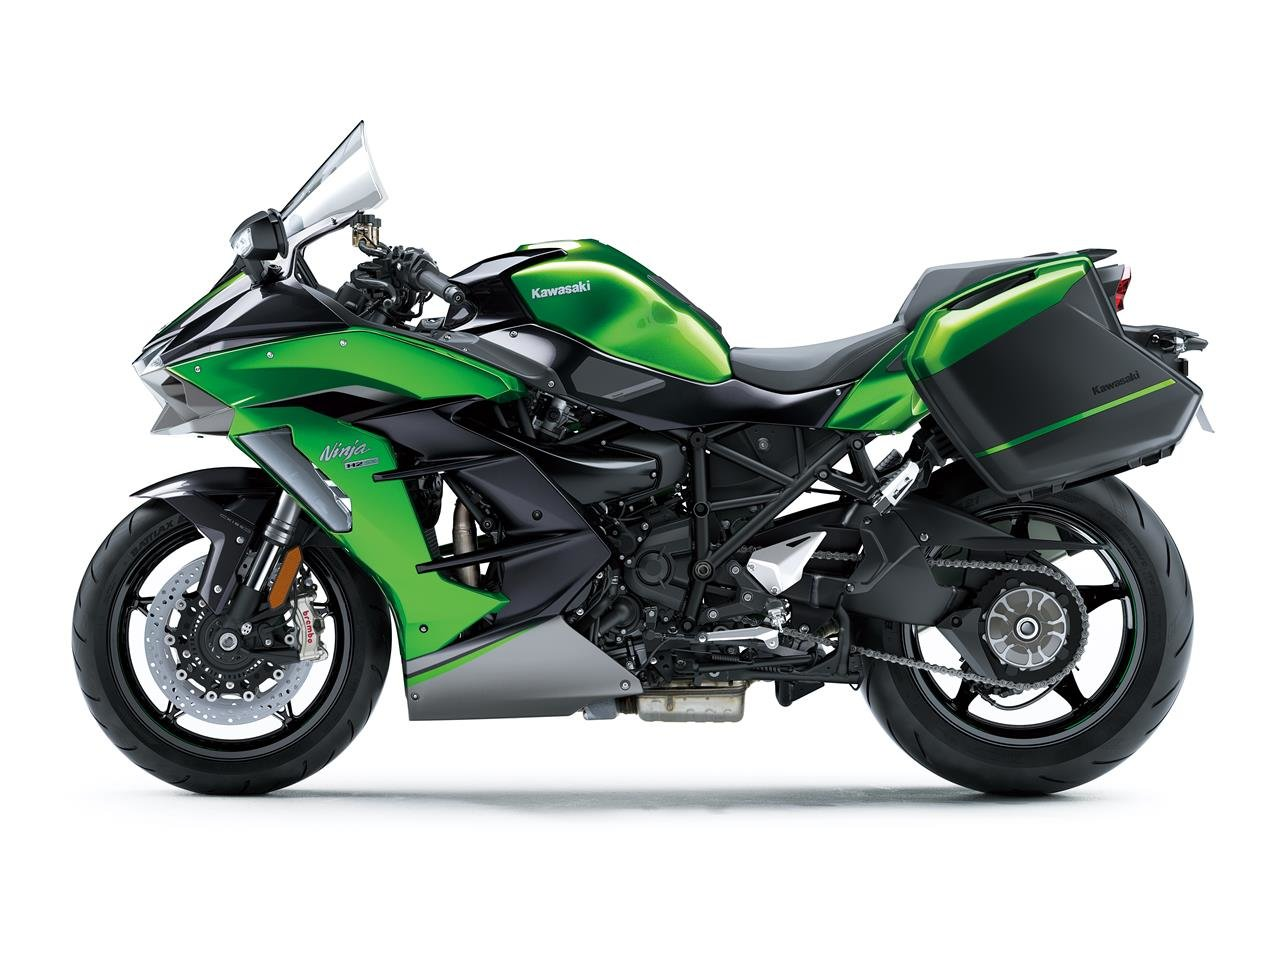 New 2020 Kawasaki Ninja H2 SX SE +*£1,000 PAID, FREE Deliver For Sale (picture 3 of 6)